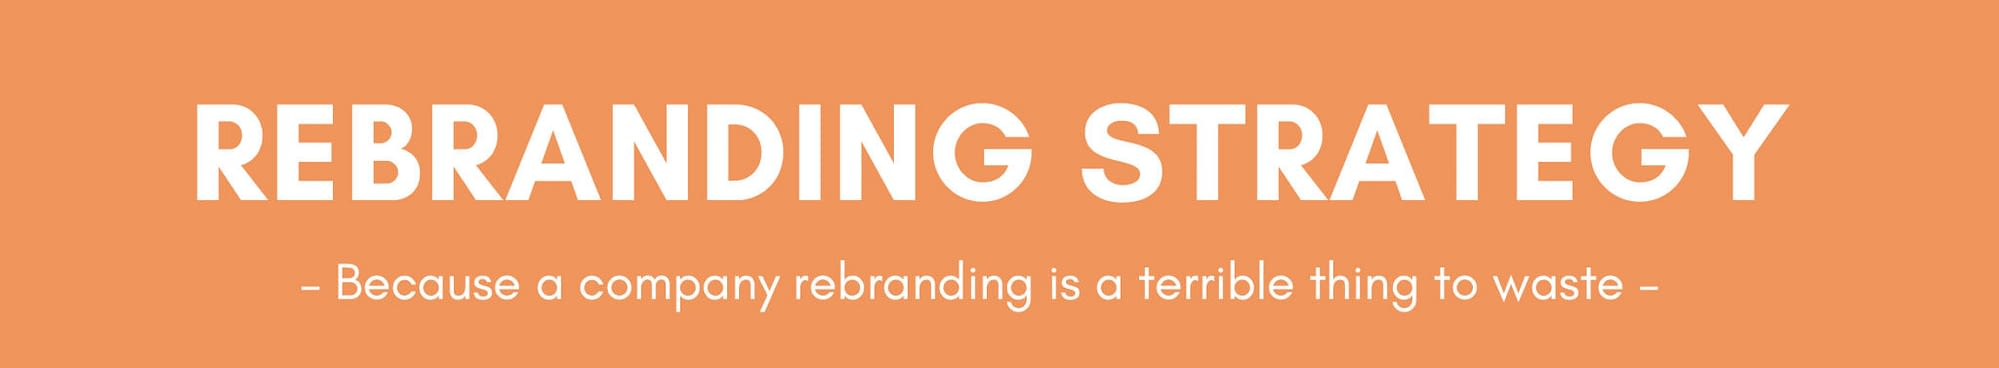 Keys To Successful Rebranding Strategy